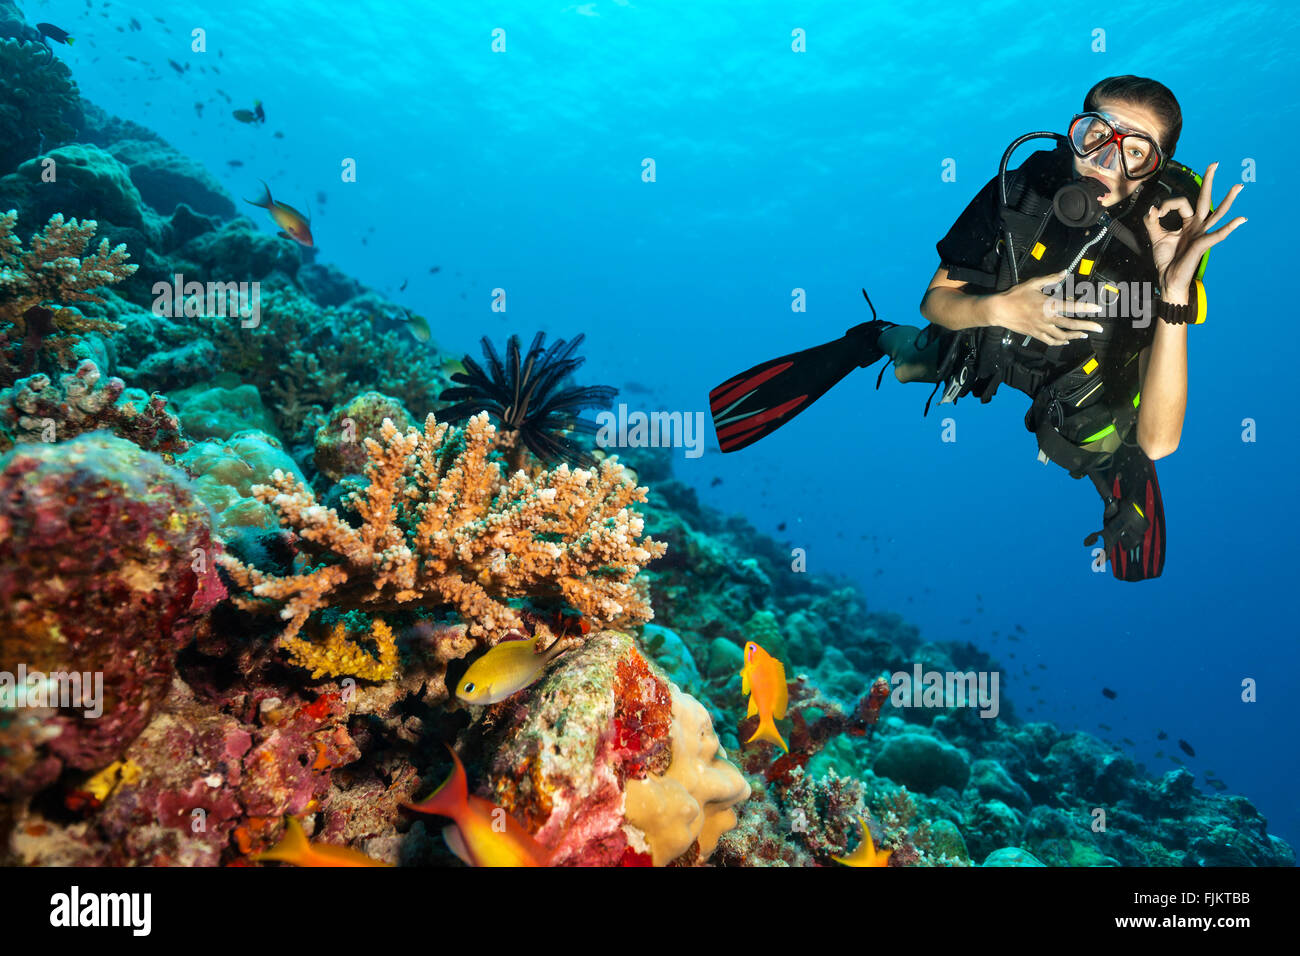 Scuba diver explore a coral reef showing ok sign - Stock Image